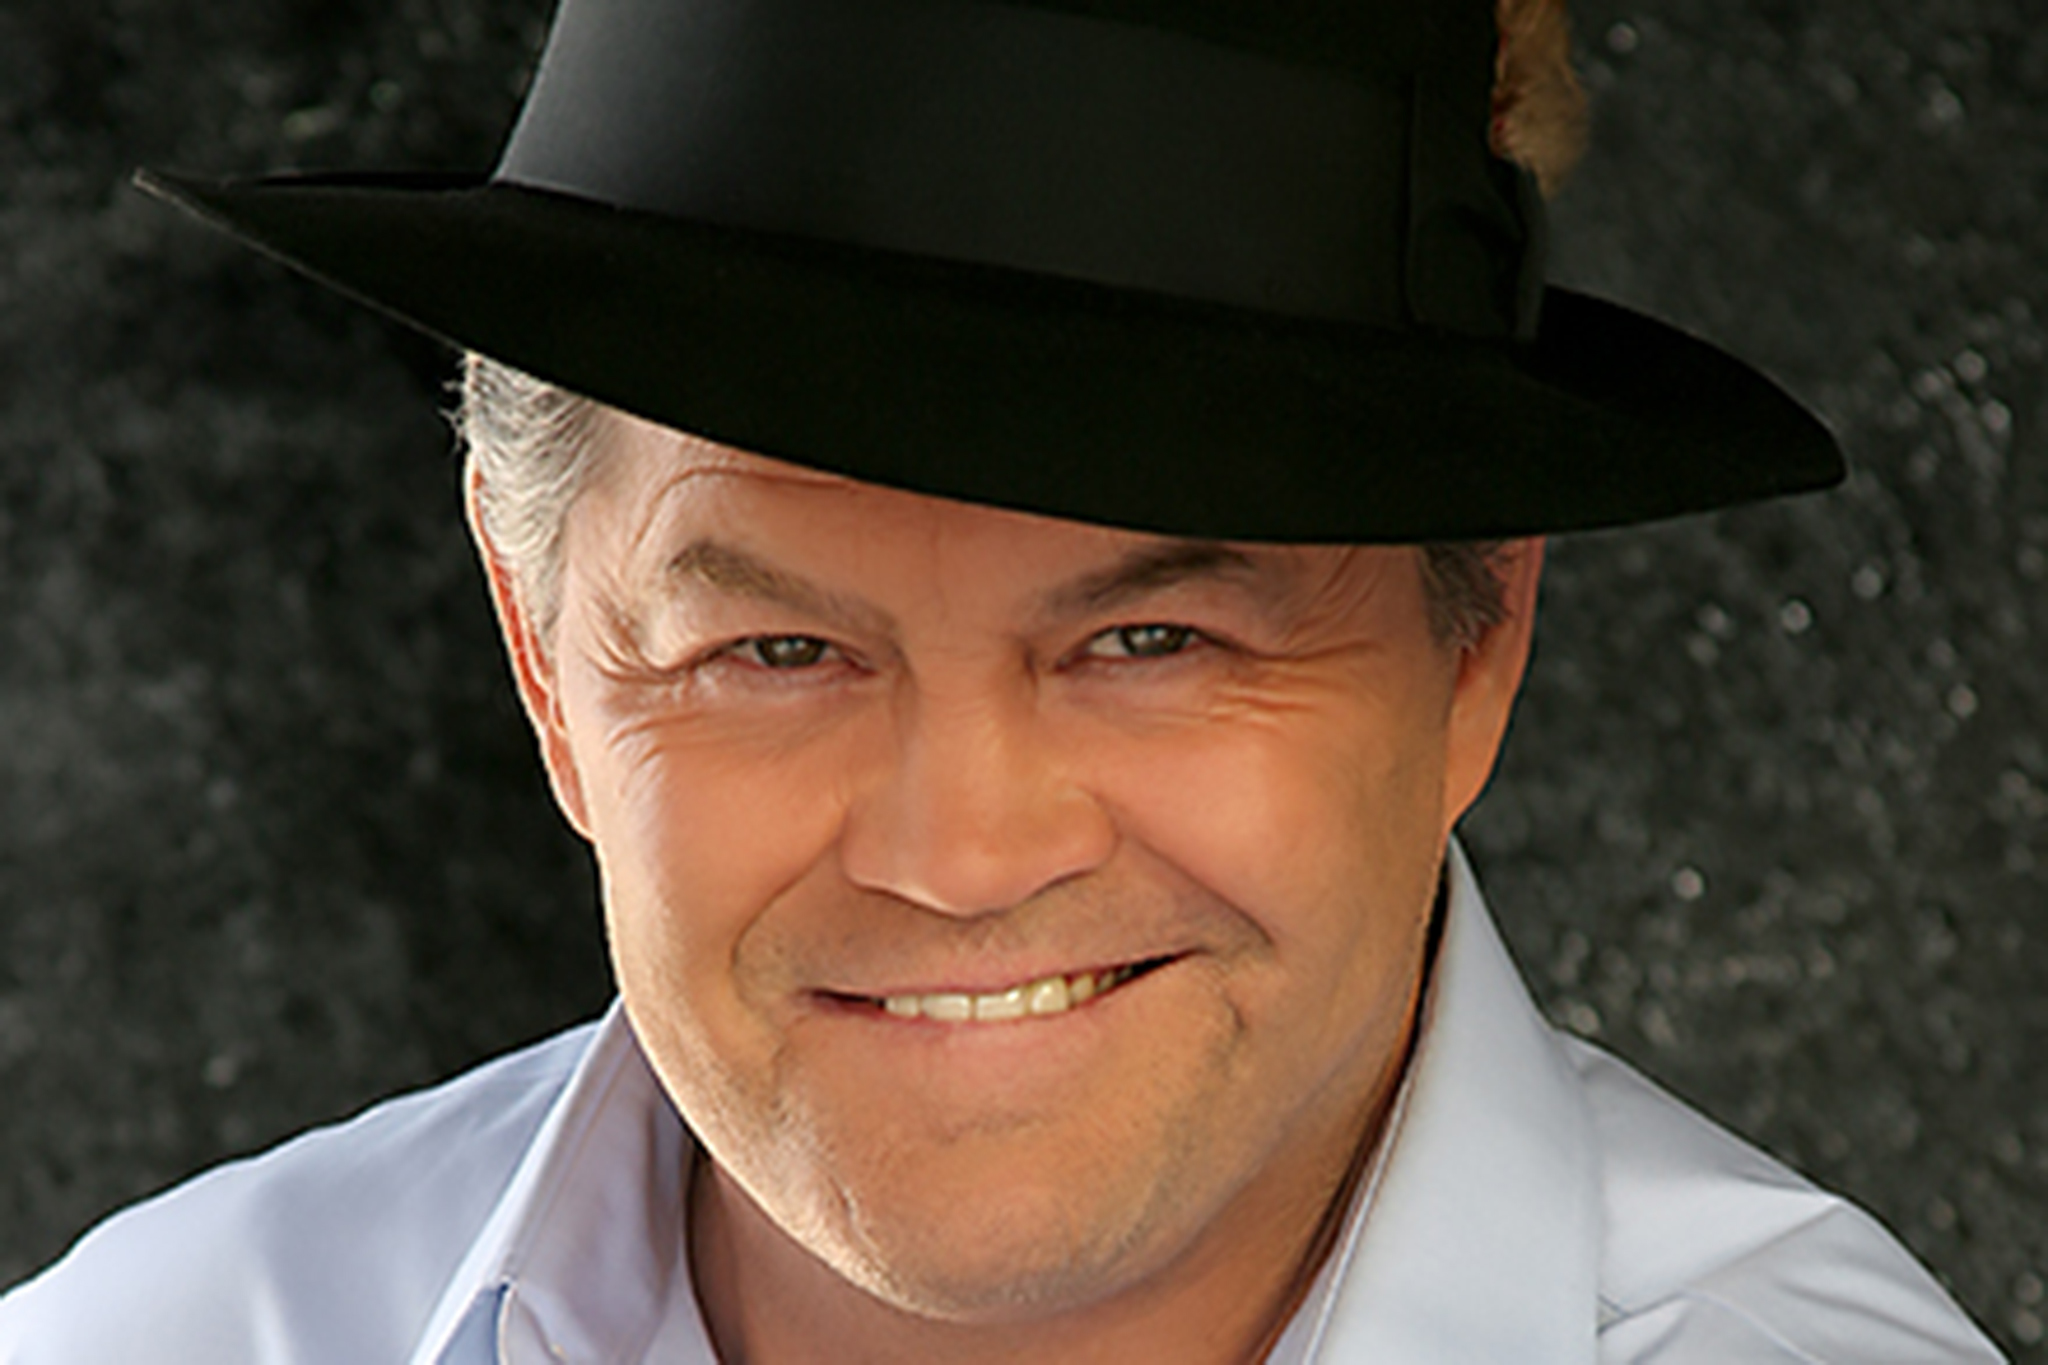 Micky Dolenz: A Little Bit Broadway, A Little Bit Rock 'n' Roll